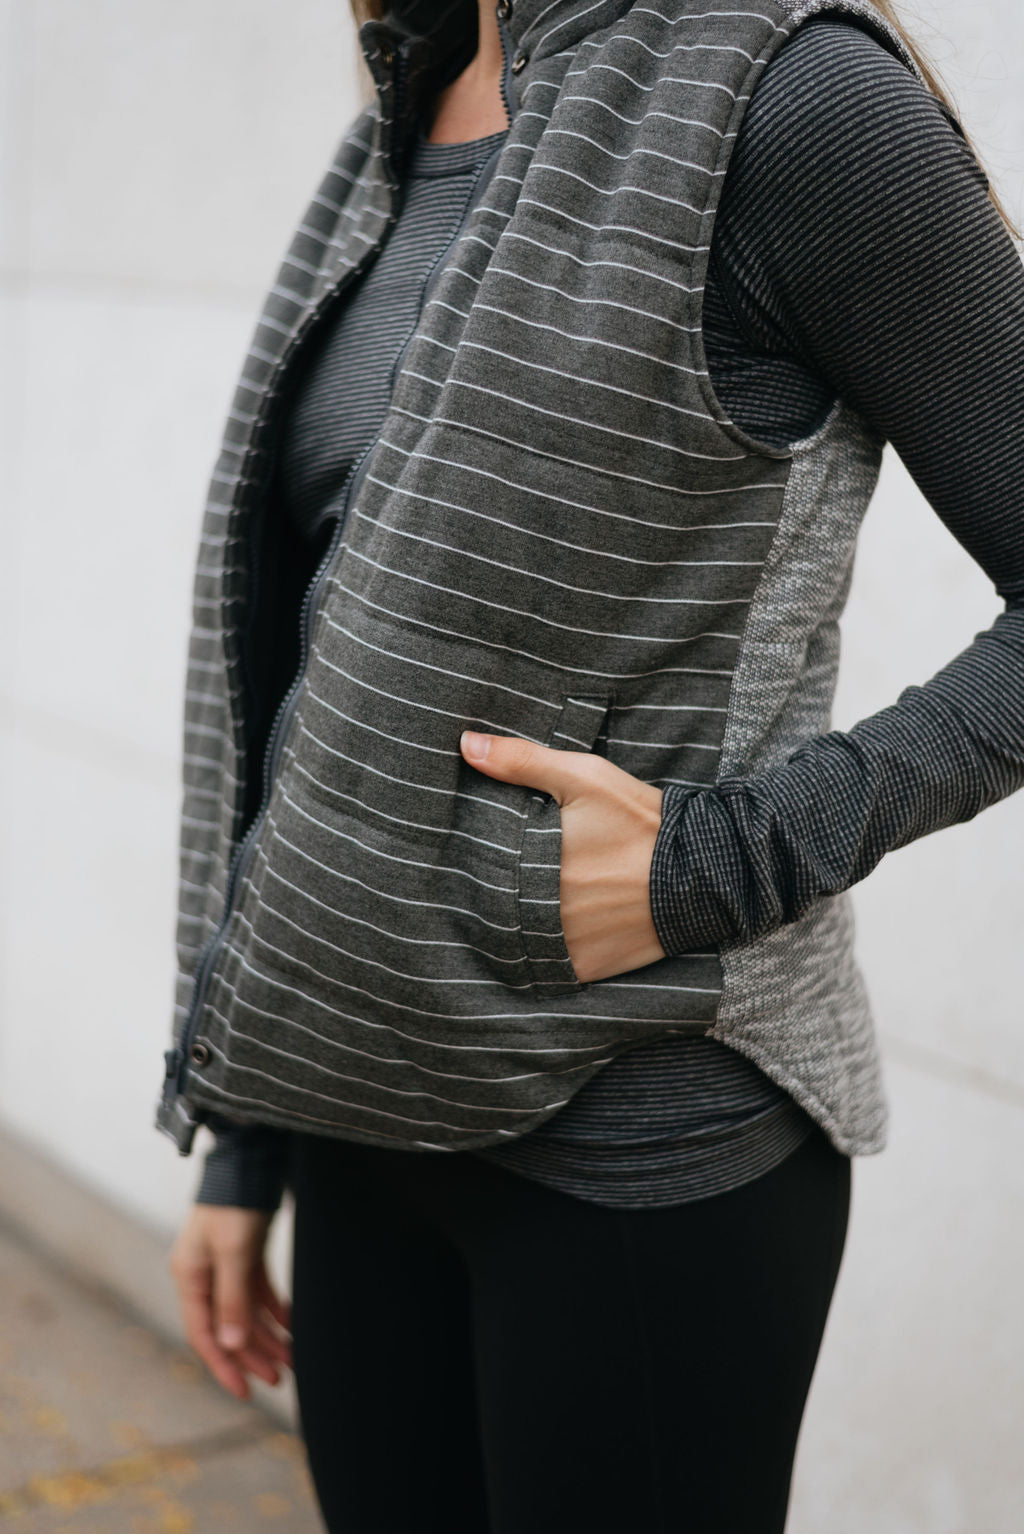 Two-tone Grey Striped Leisurewear Vest - The Elsa